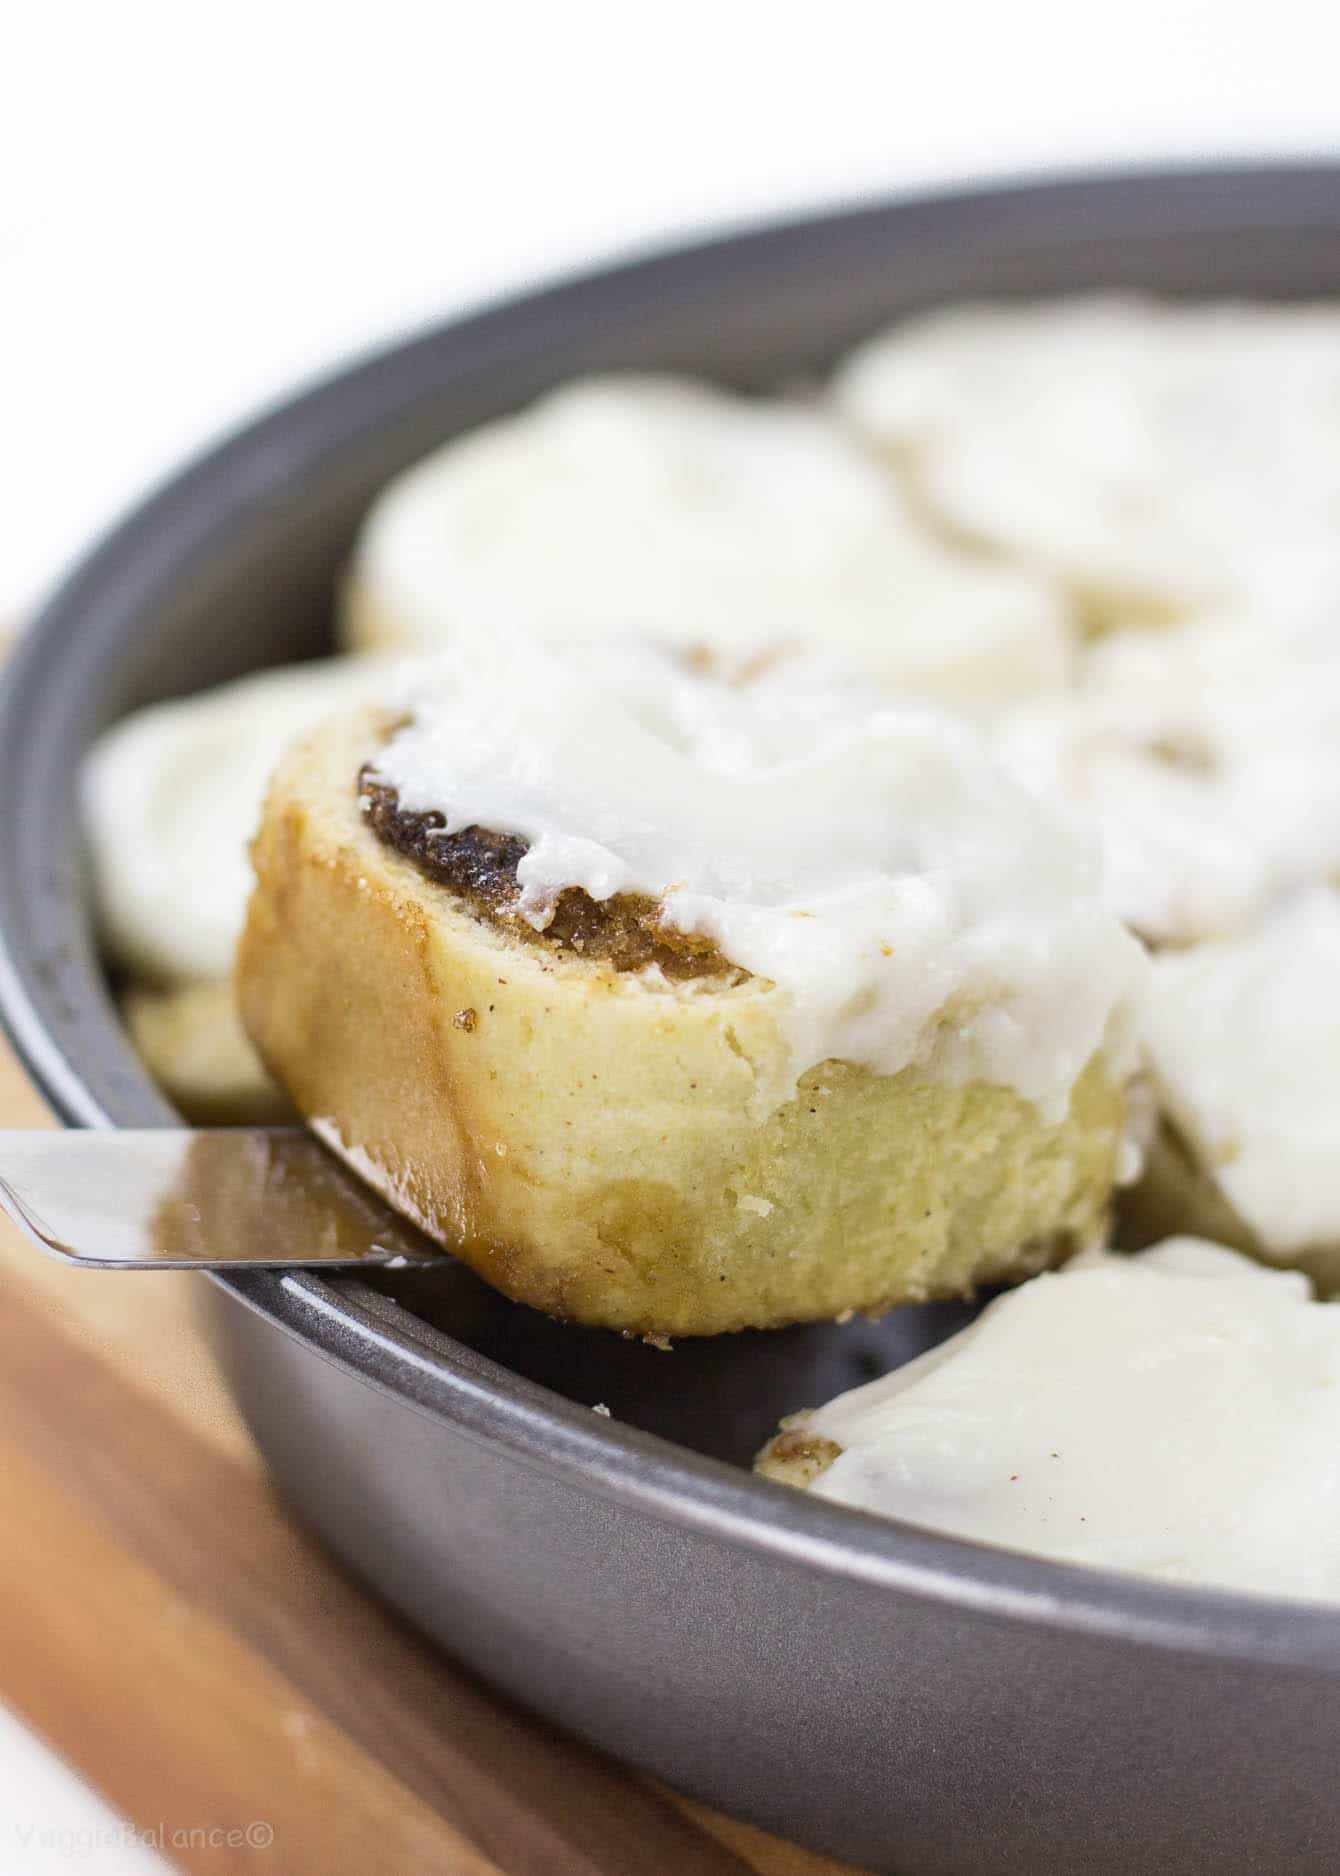 Gluten Free Cinnamon rolls made with no yeast will make your weekend breakfast easier and more comforting than ever. Can easily be prepared the night before so all you need to do on a Saturday morning is pour yourself a cup of coffee and bake those cinnamon rolls. (Gluten Free, Dairy Free)